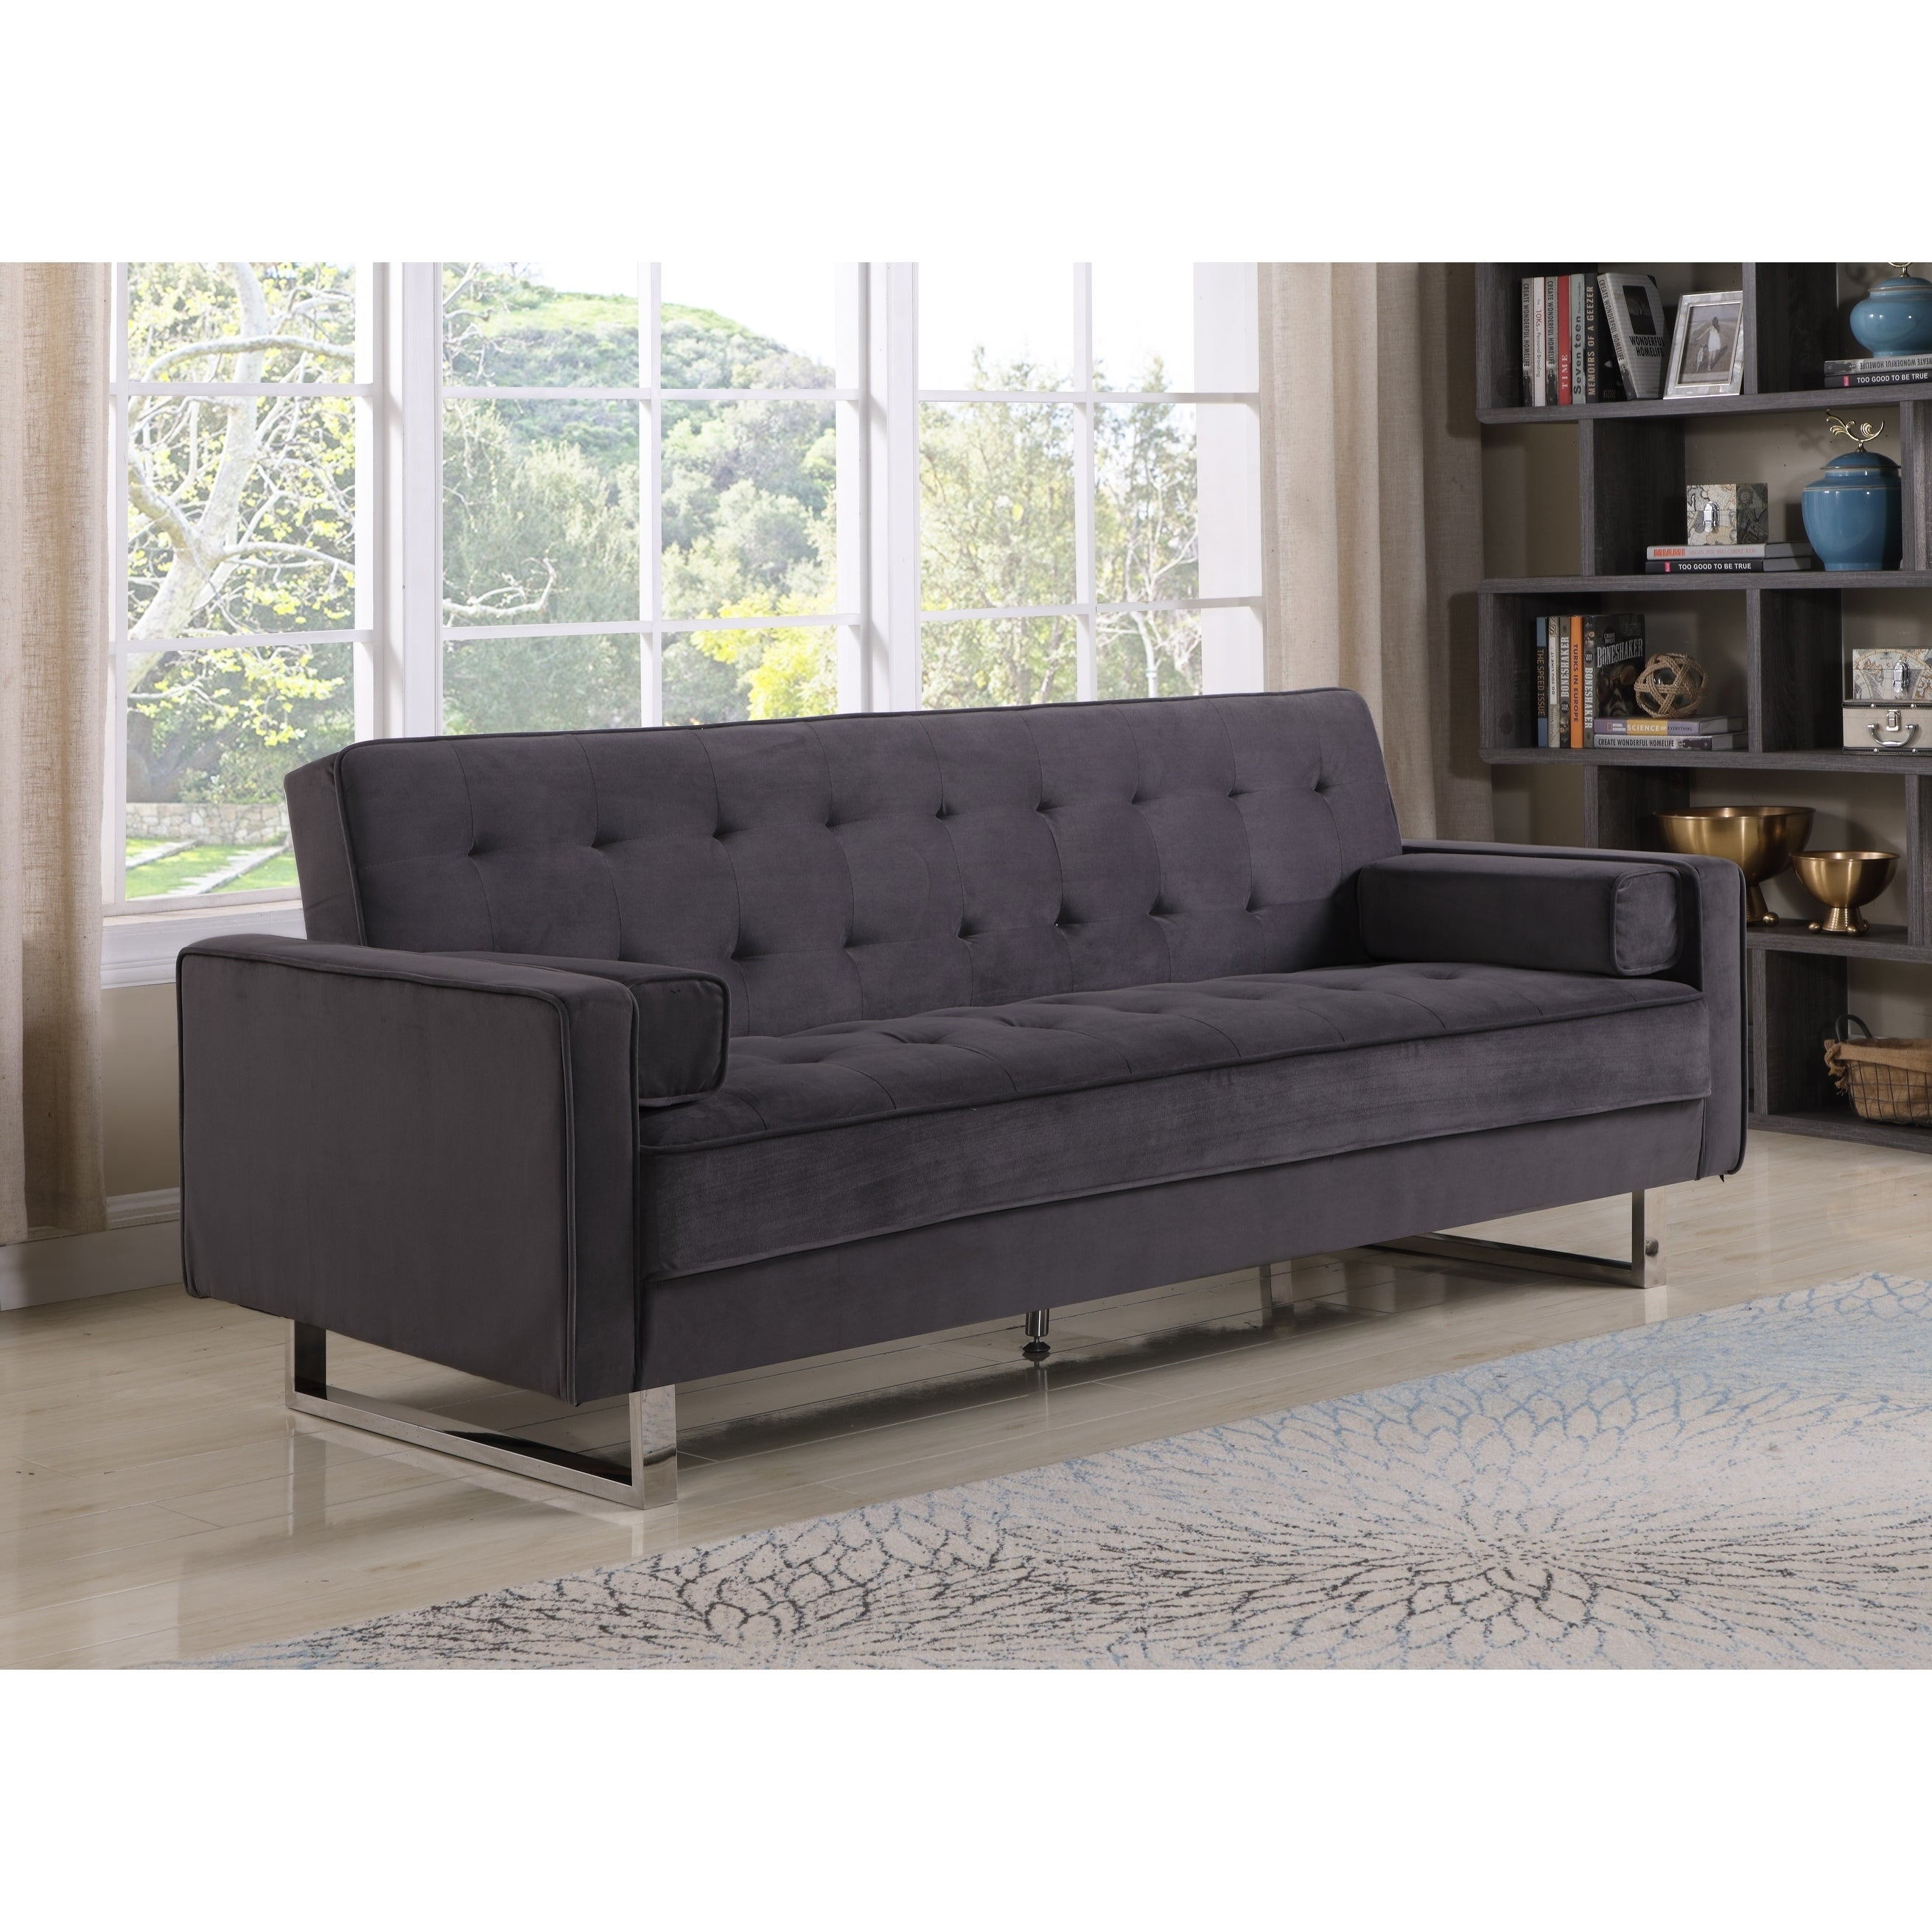 Shop best quality furniture velvet tufted click clack sofa bed free shipping today overstock com 22543759